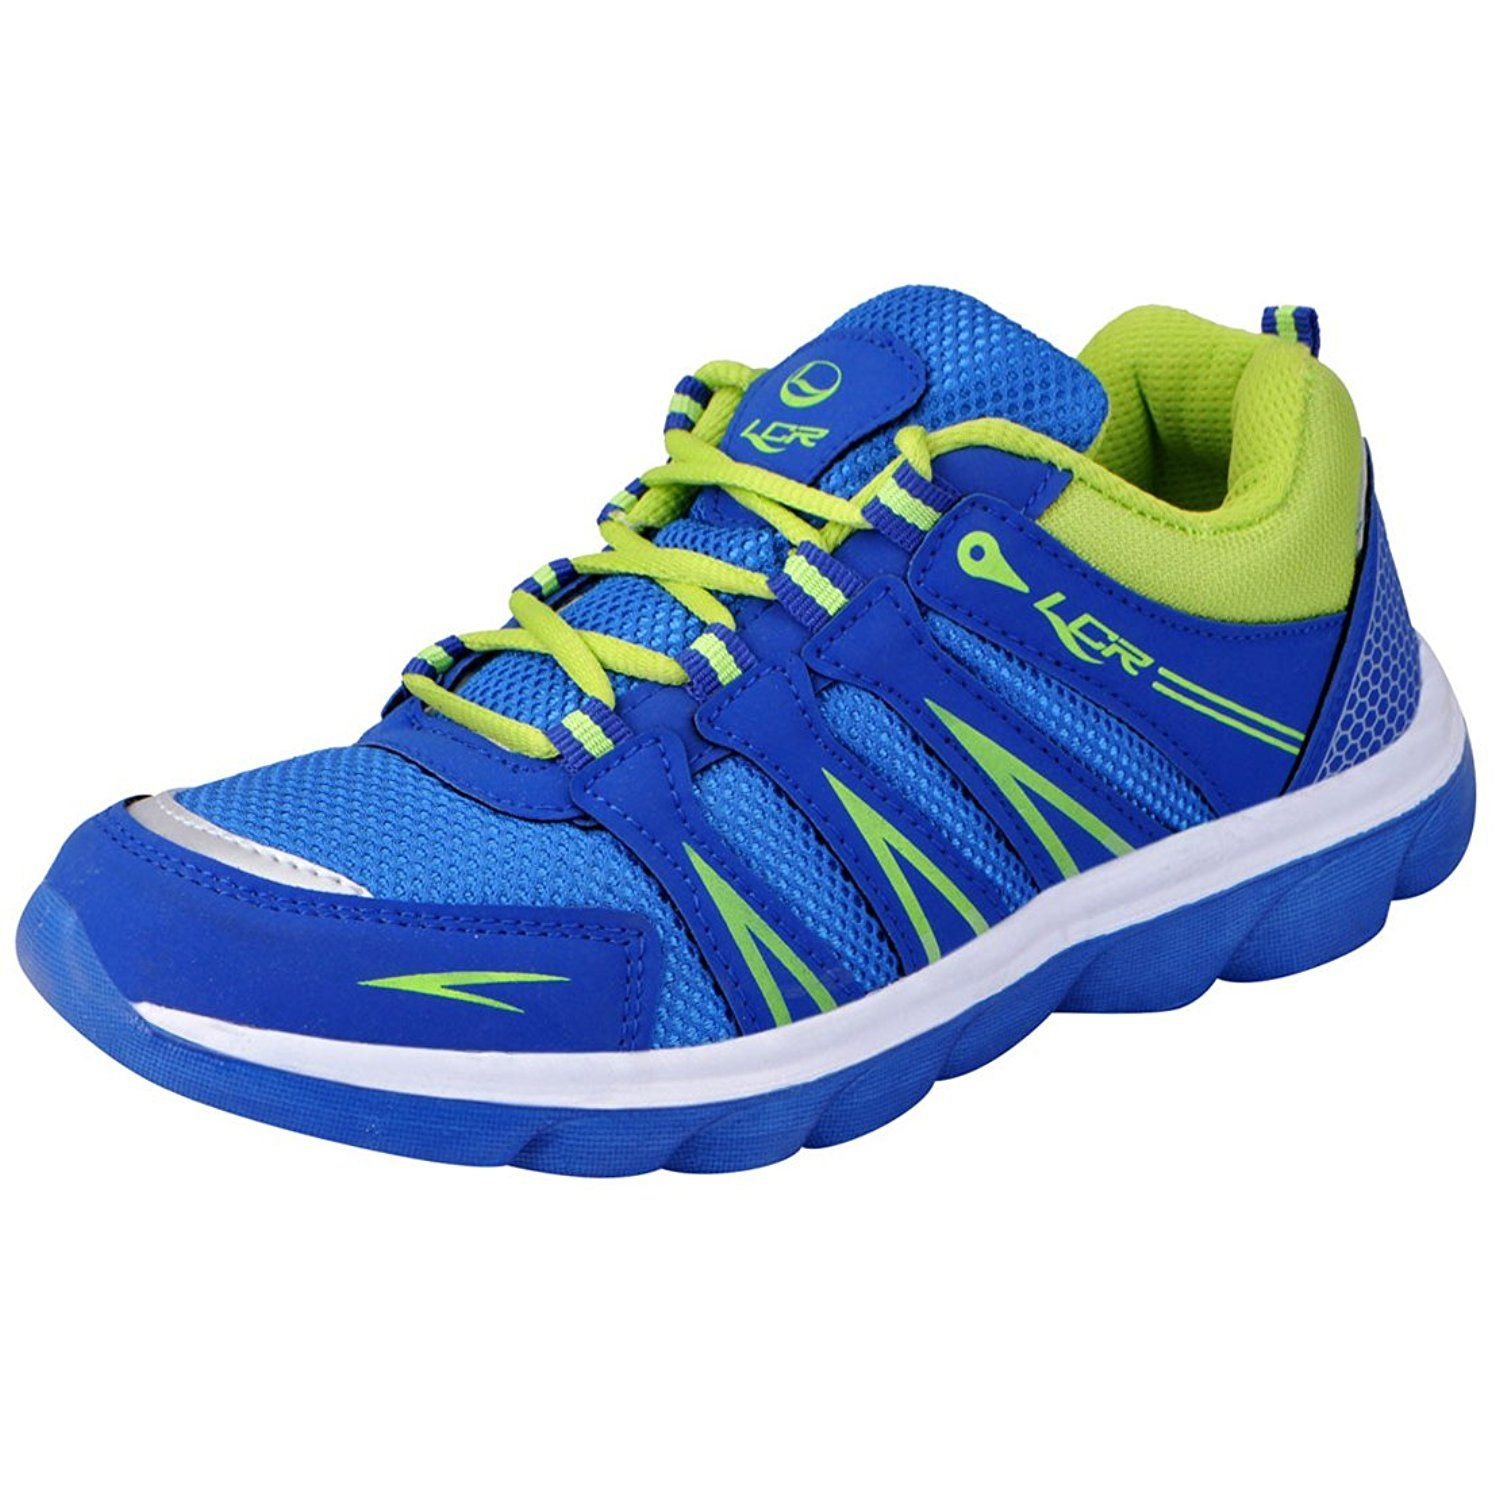 4c1639e0f Lancer Men s Sports Runnning Shoes  Buy Online at Low Prices in India -  Amazon.in